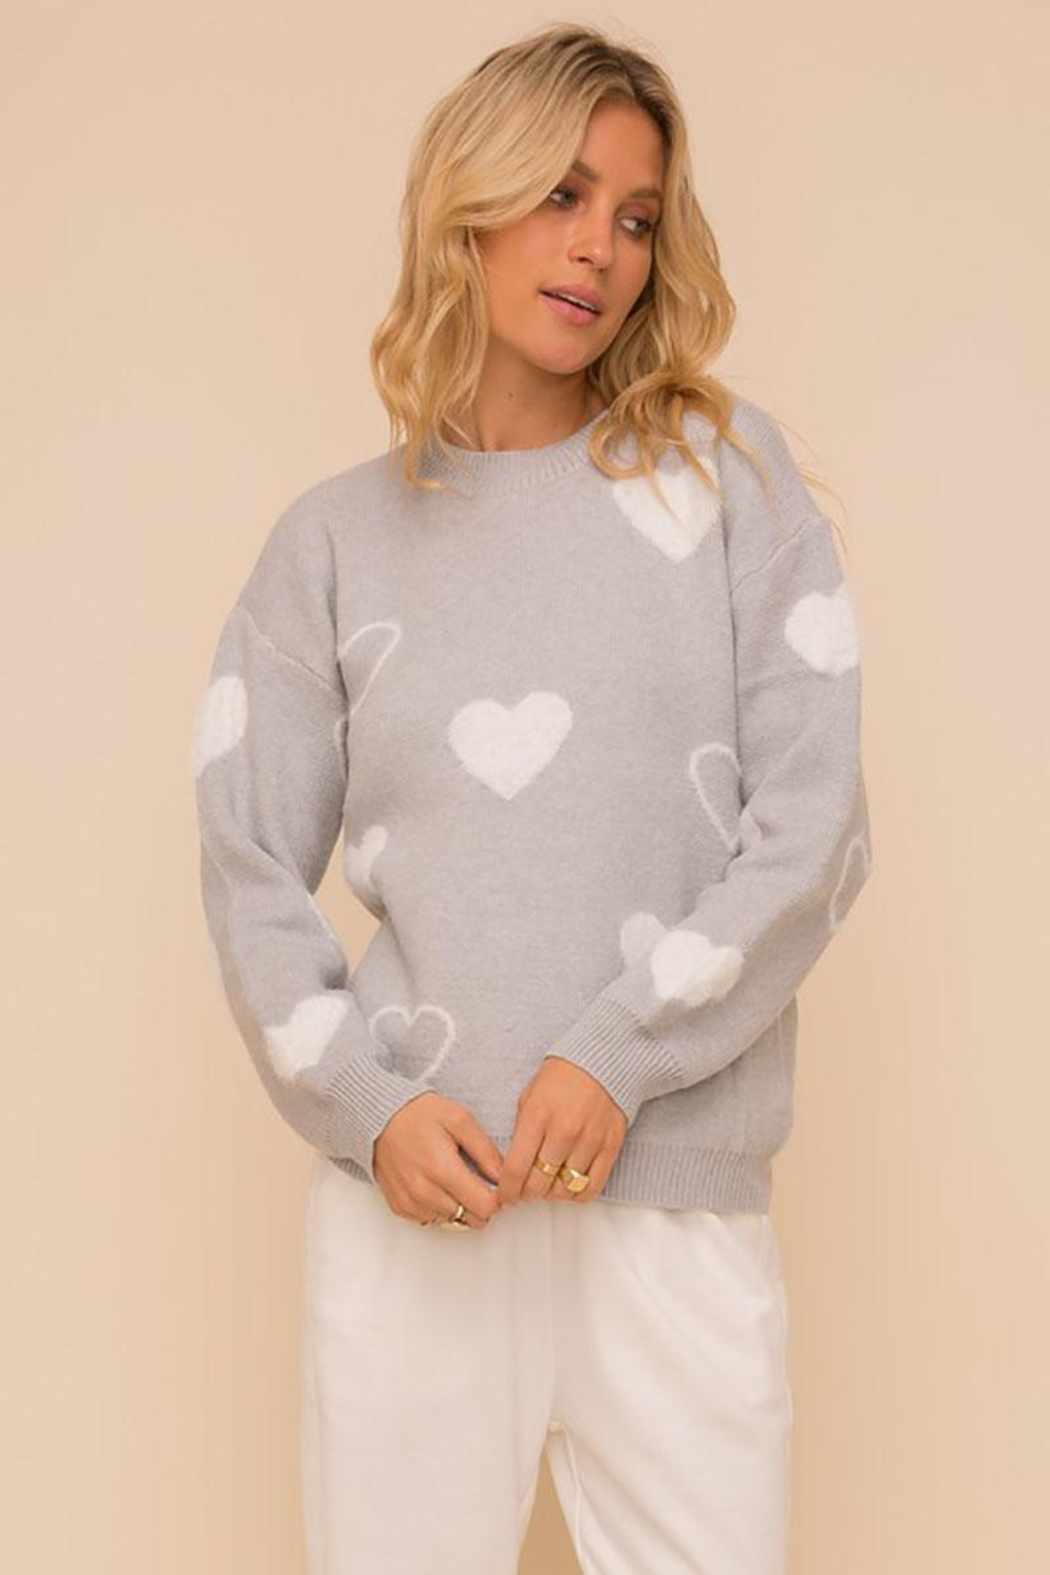 Mint Cloud Boutique Super Soft Heart Print Knit Crew Neck Cozy Pullover Sweater - Front Full Image